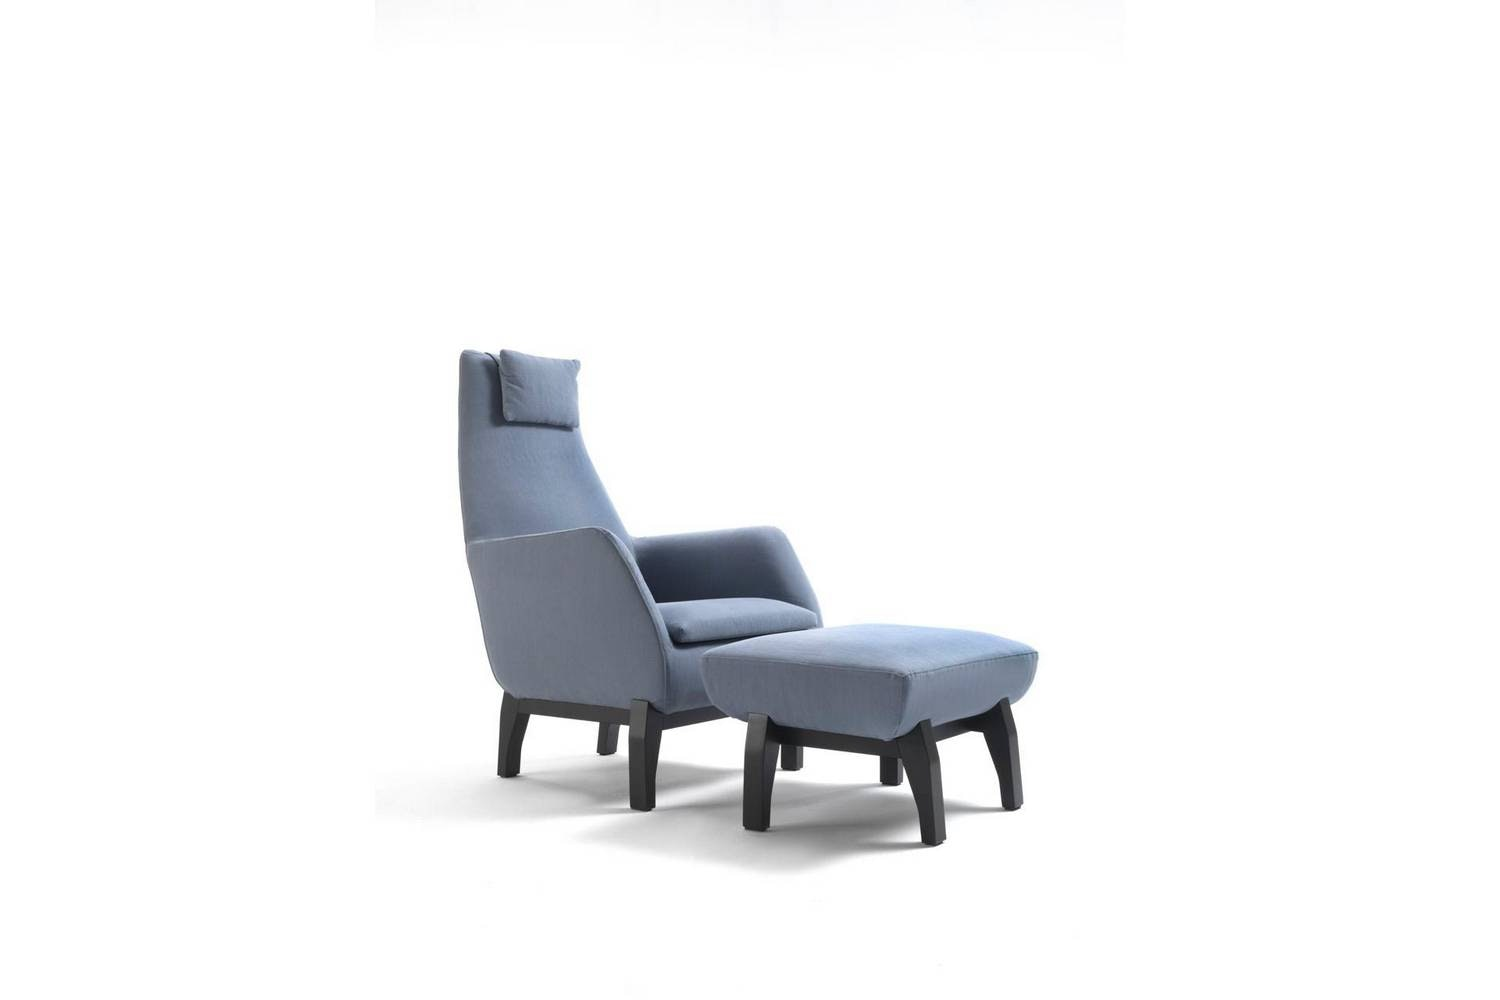 Daisy Armchair by P. Salvade for Porada